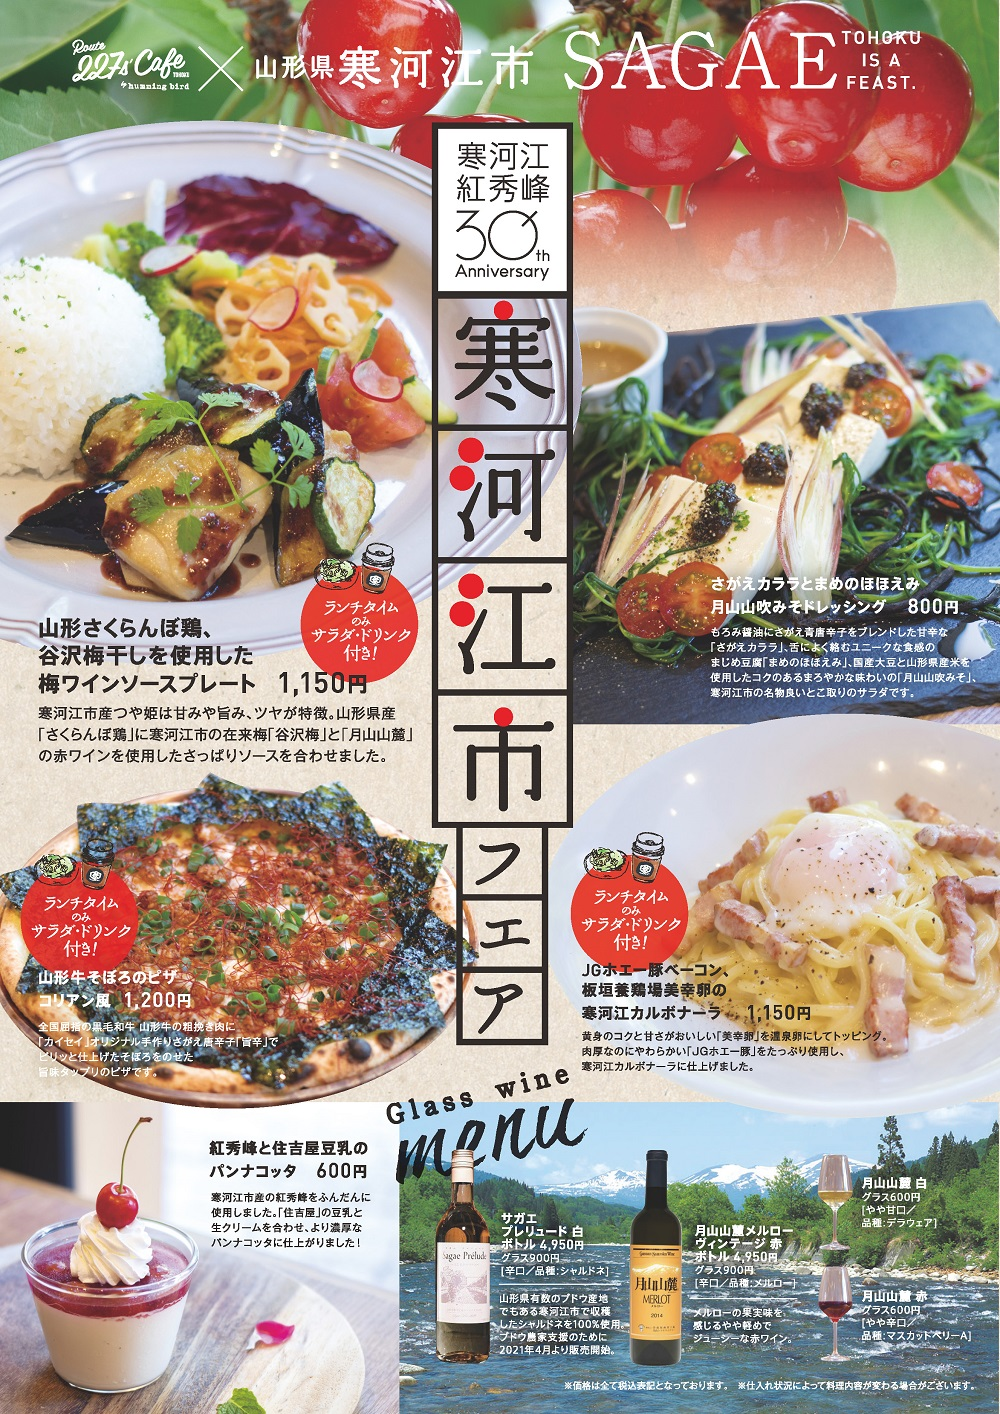 Route 227s' Cafe 寒河江市フェアメニュー